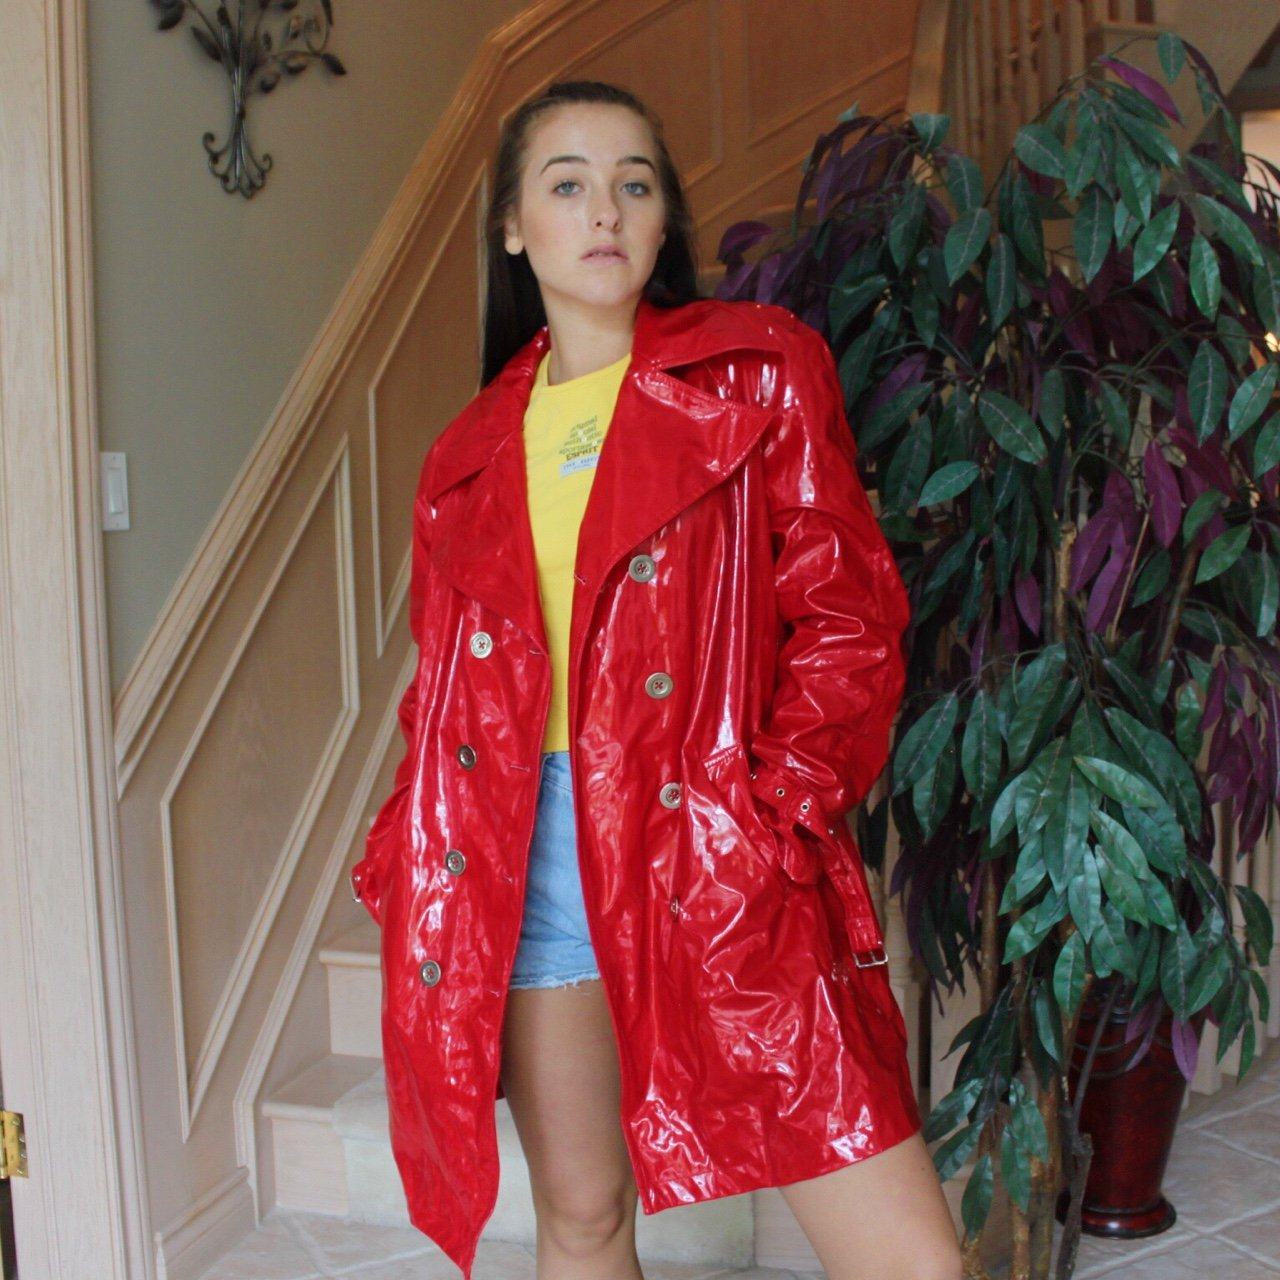 60a687237 THE MOST KILLER VINYL/PATENT LEATHER RED TRENCH COAT!!!!! IS - Depop